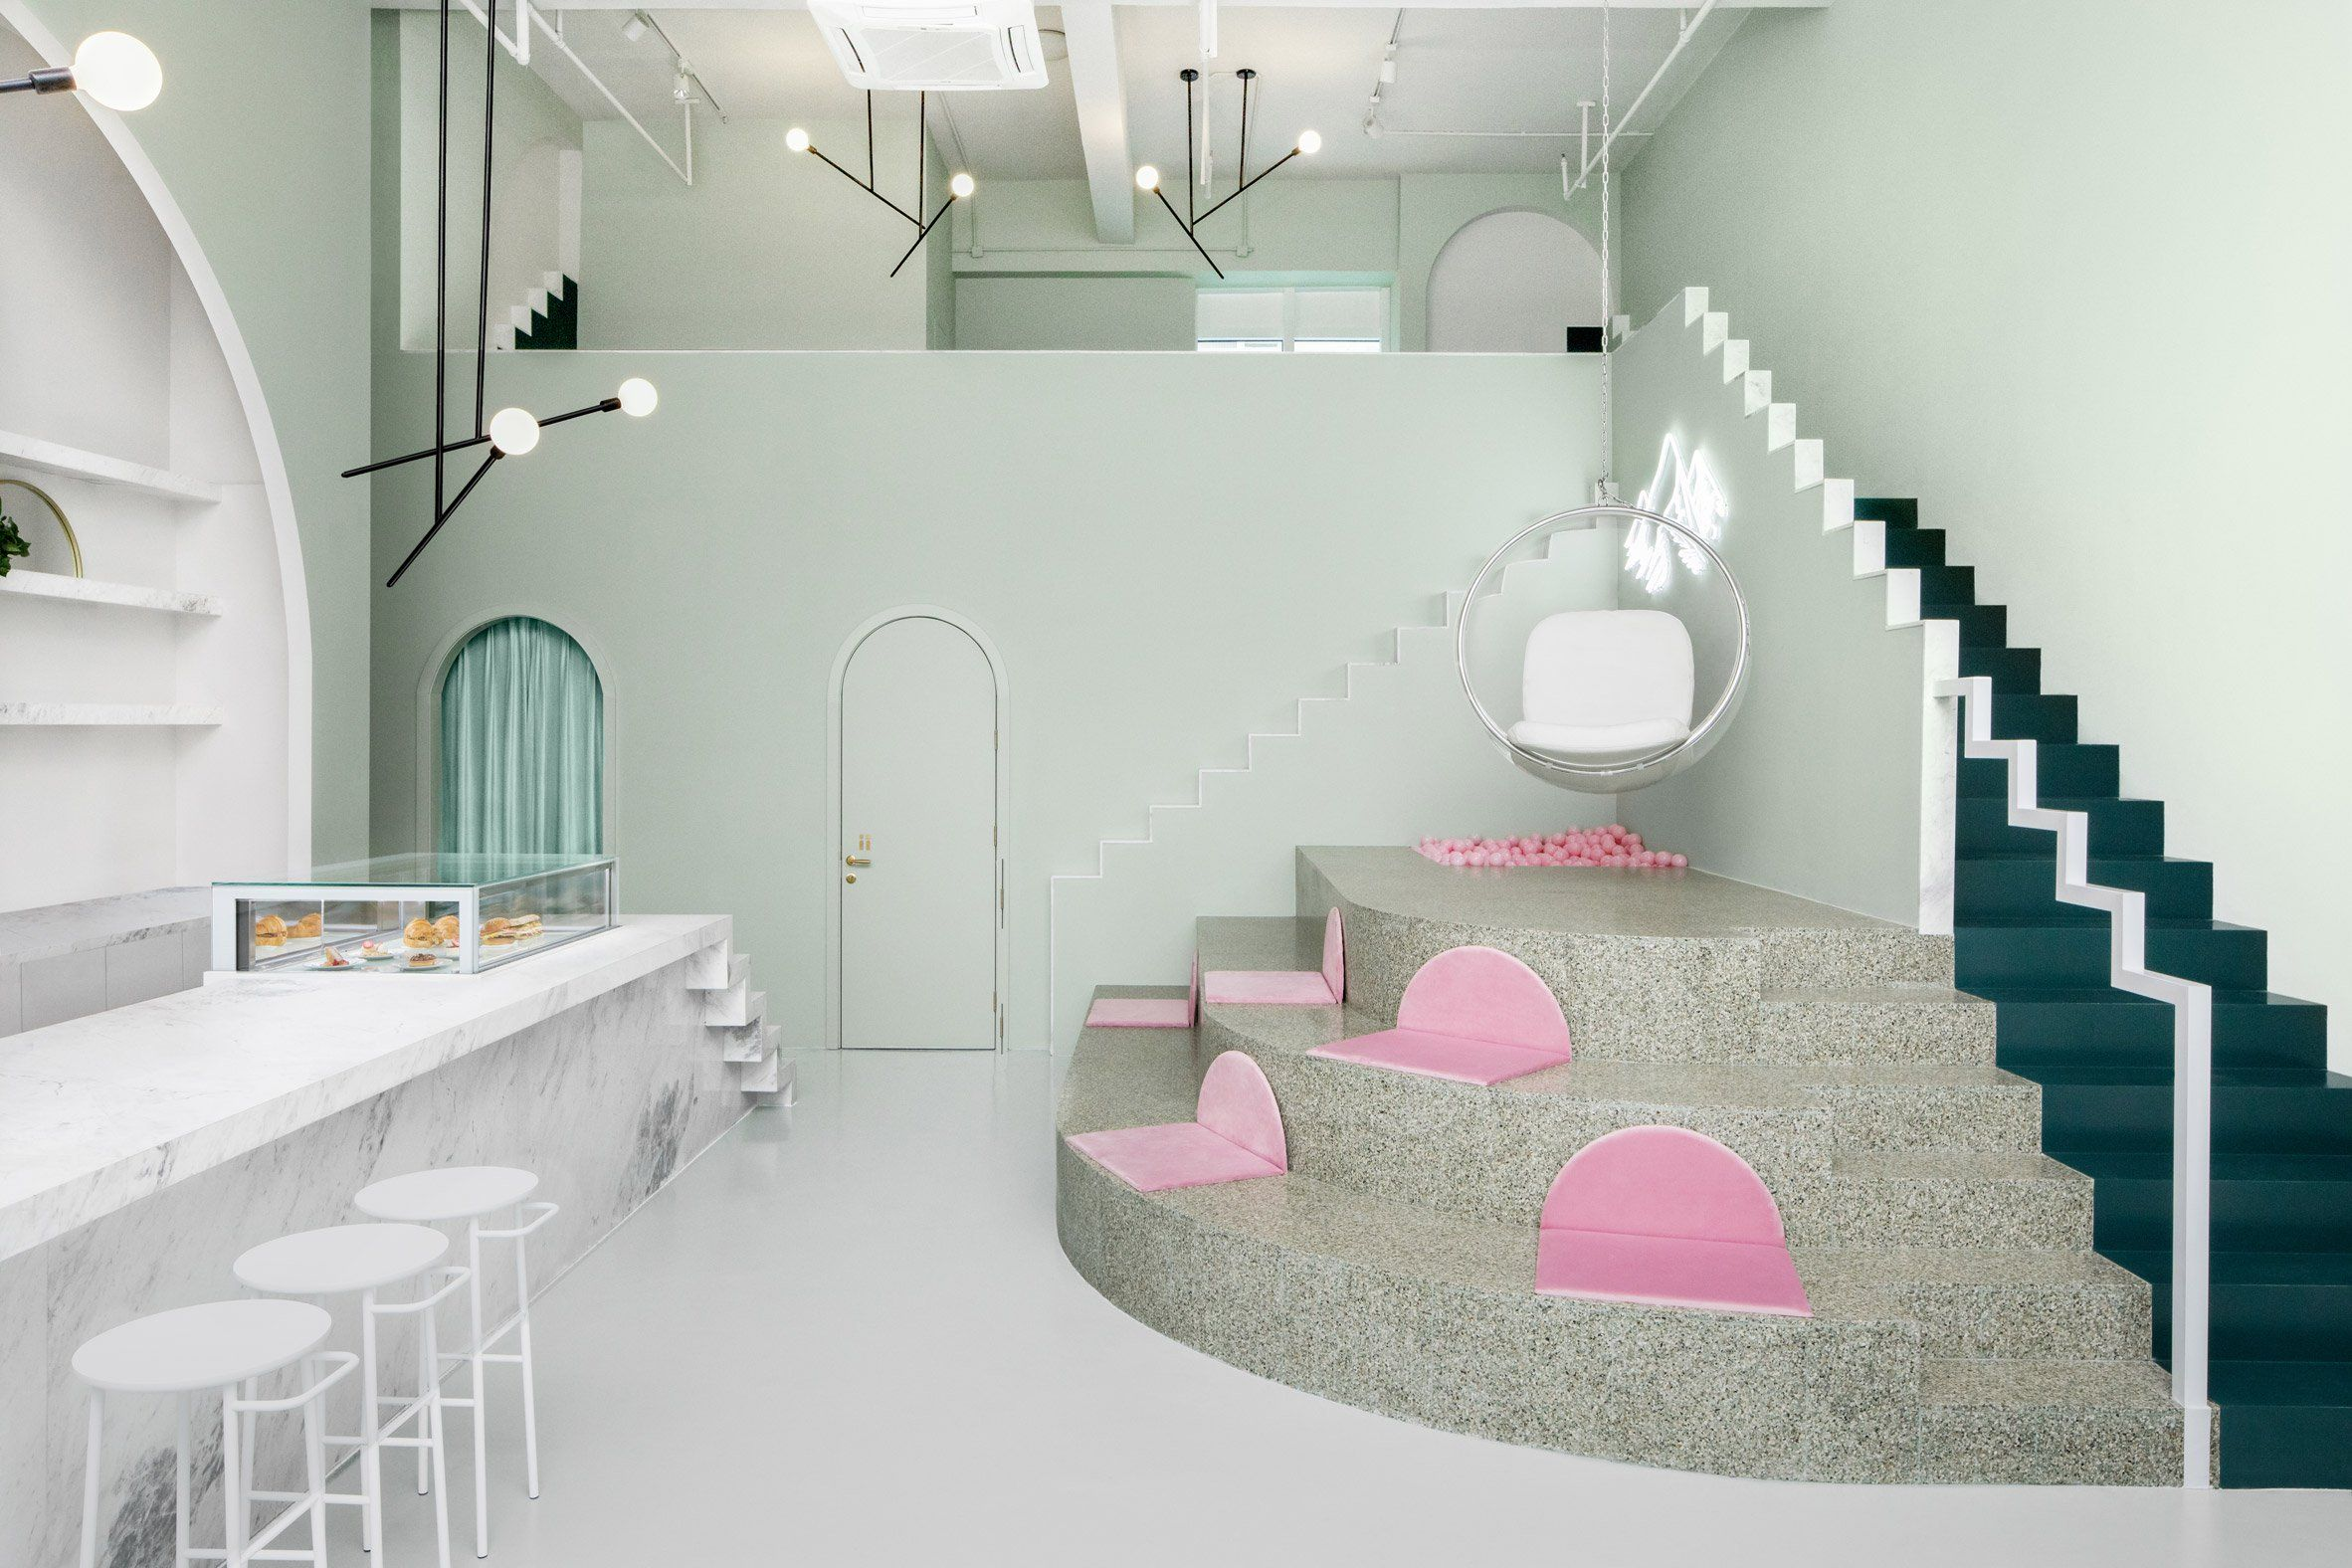 chengdu cafe features interiors inspired by wes anderson movie rh pinterest com